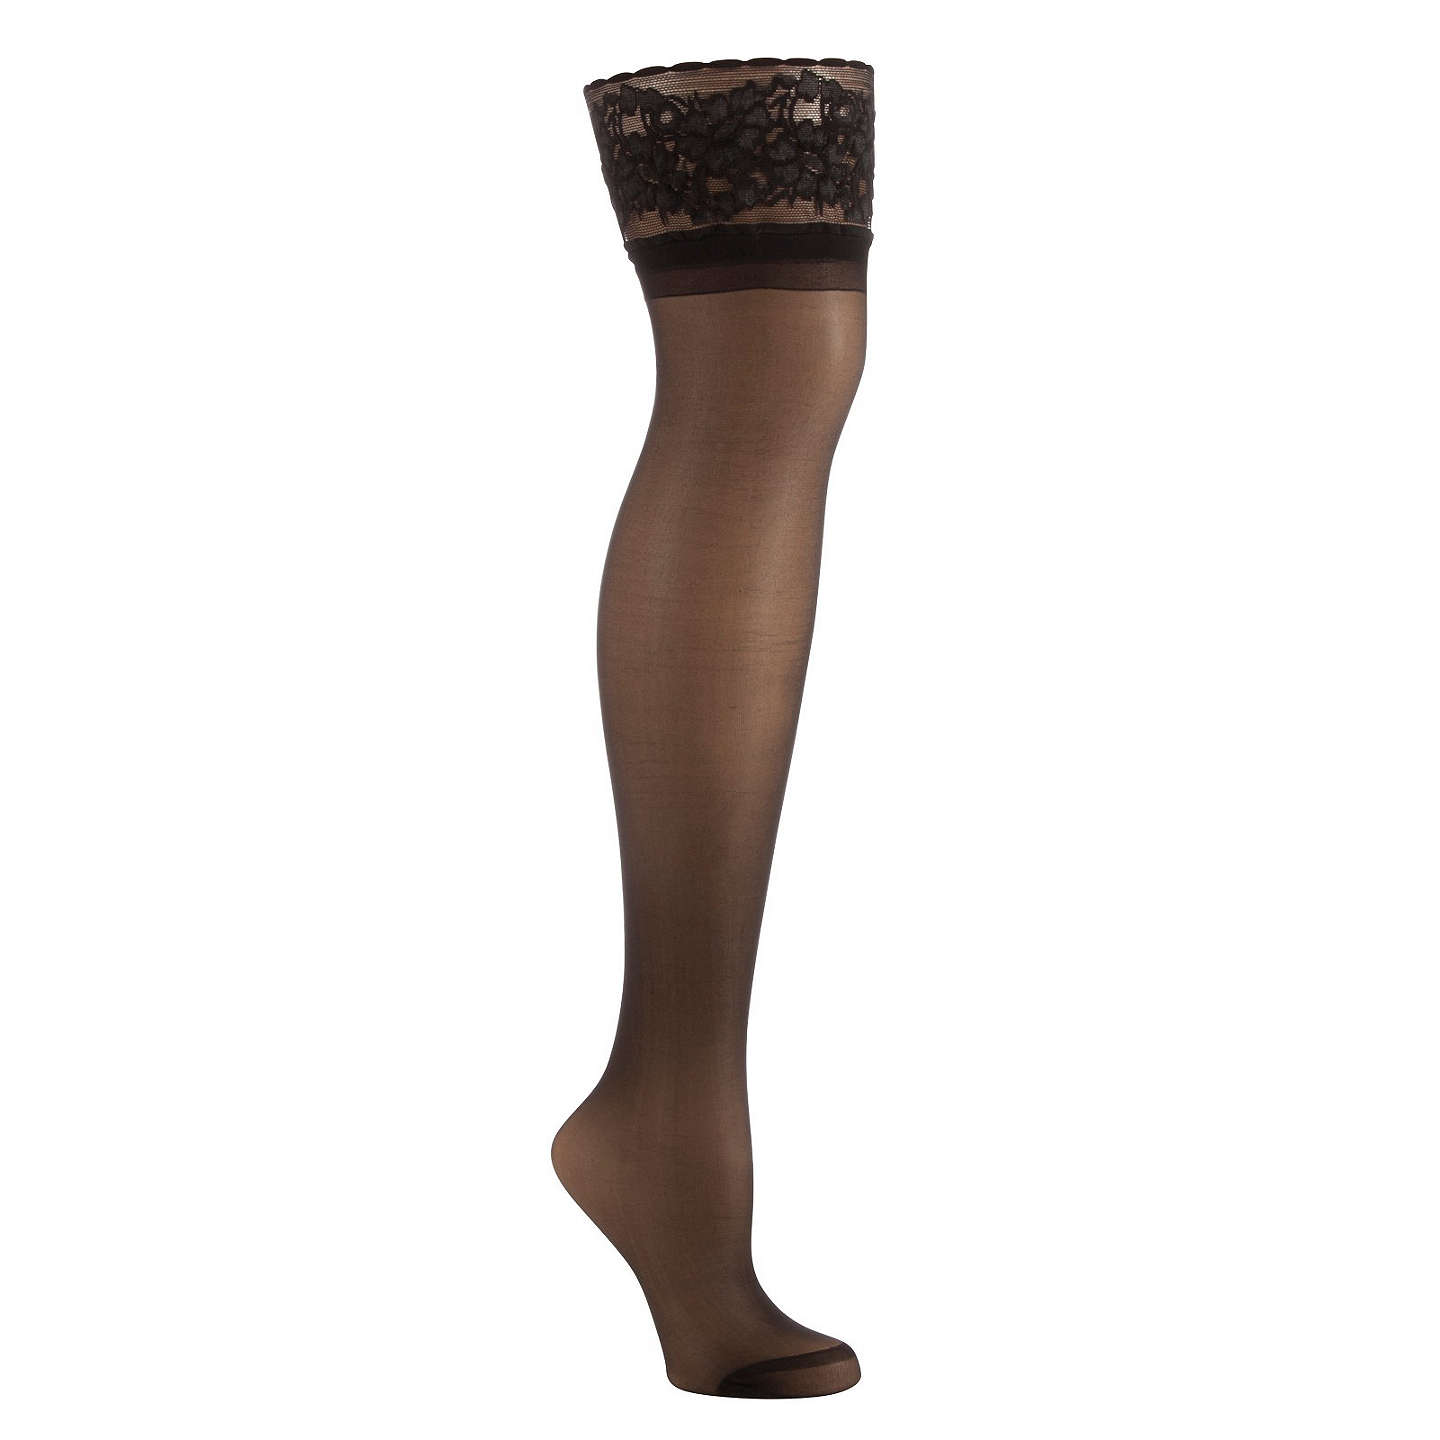 BuyJohn Lewis 7 Denier Medium Support Knee High Socks, Pack of 2, Black Online at johnlewis.com